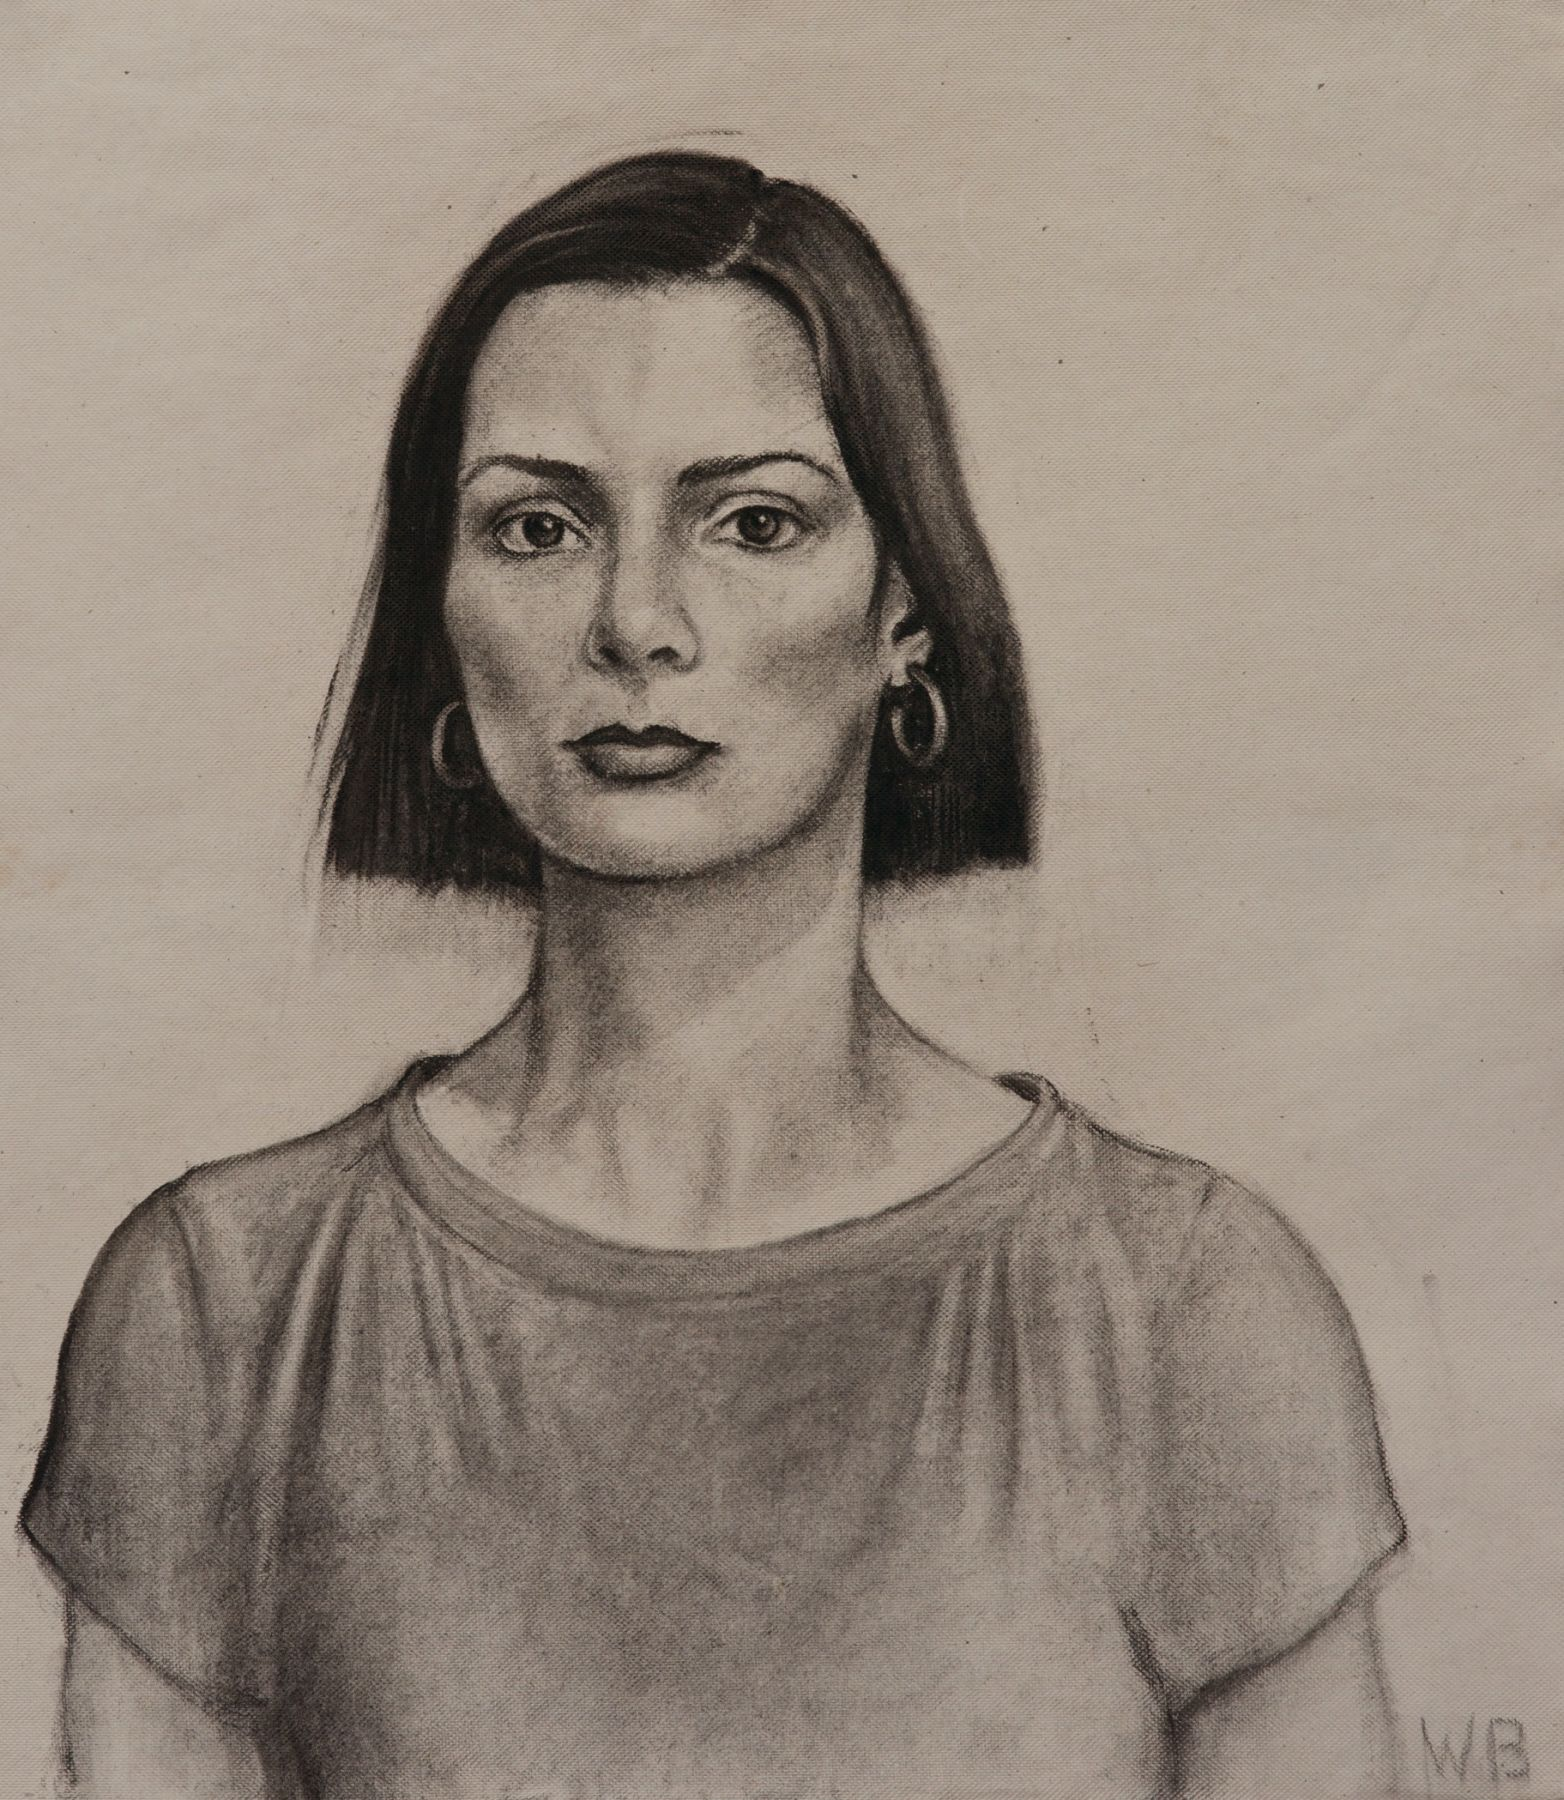 william beckman, Dianne, 2013, charcoal on handmade paper, 29 x 25 inches